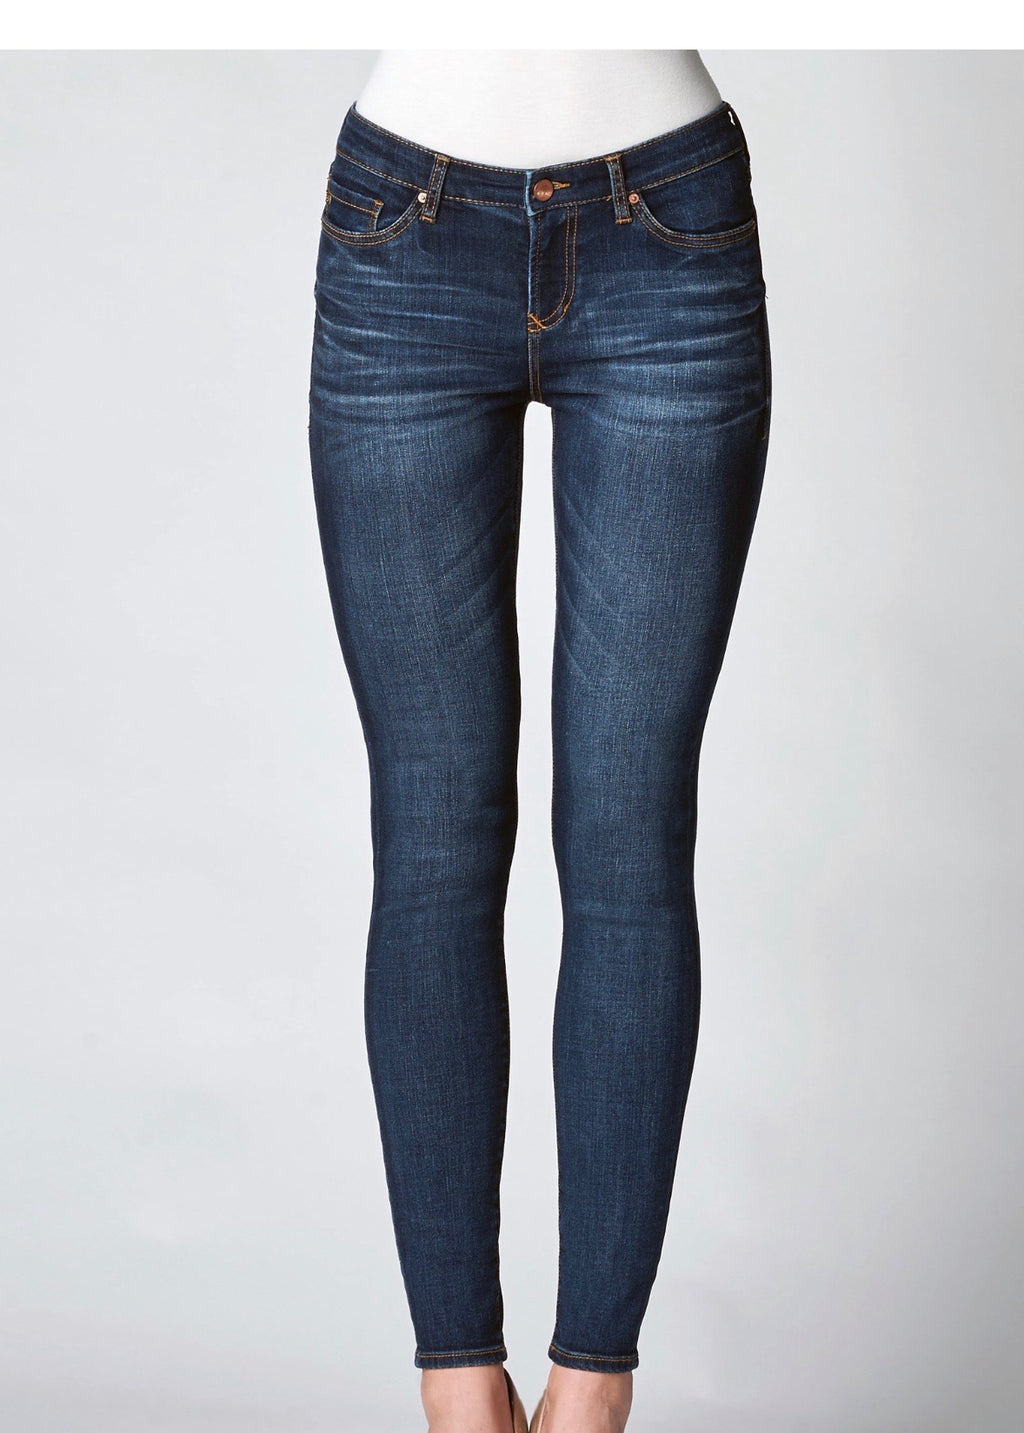 Reload Gisele Skinny by Dear John - Lois Pearl Boutique